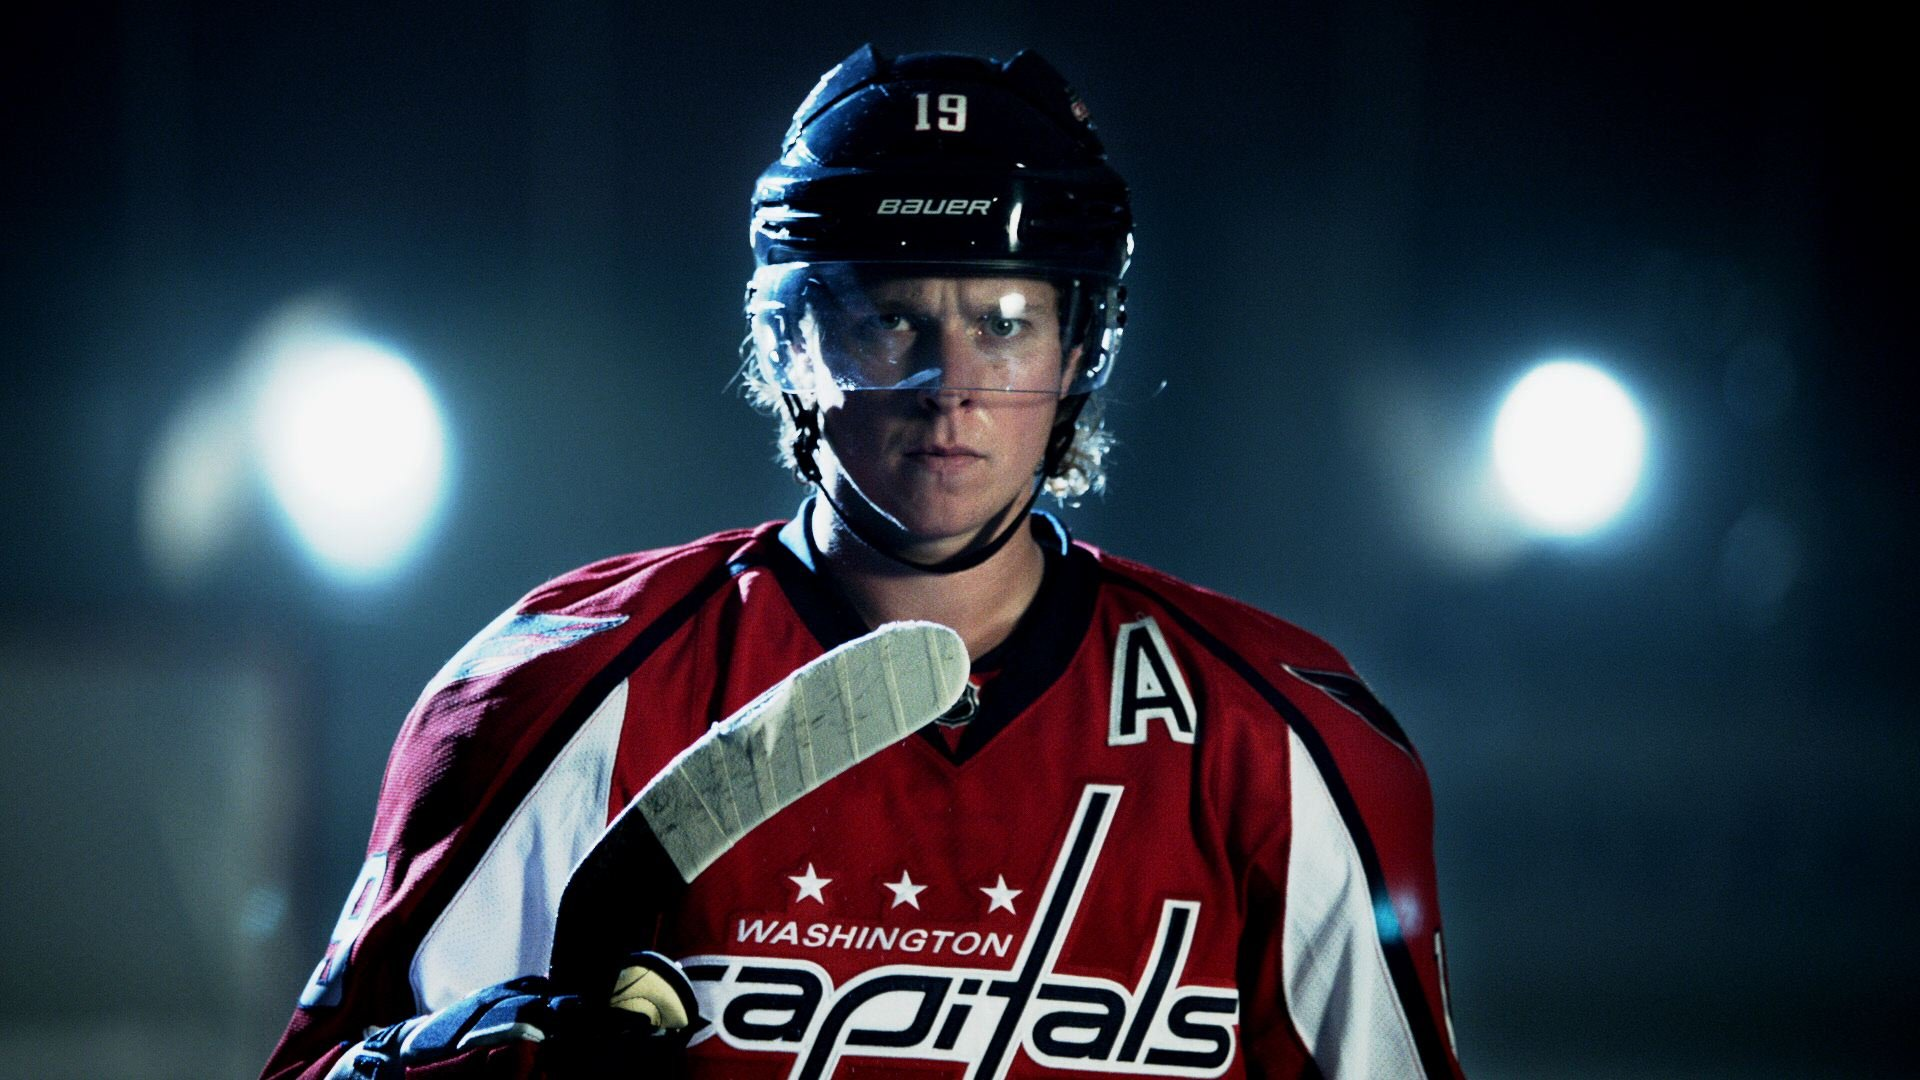 WASHINGTON CAPITALS hockey nhl 8 wallpaper 1920x1080 359649 1920x1080